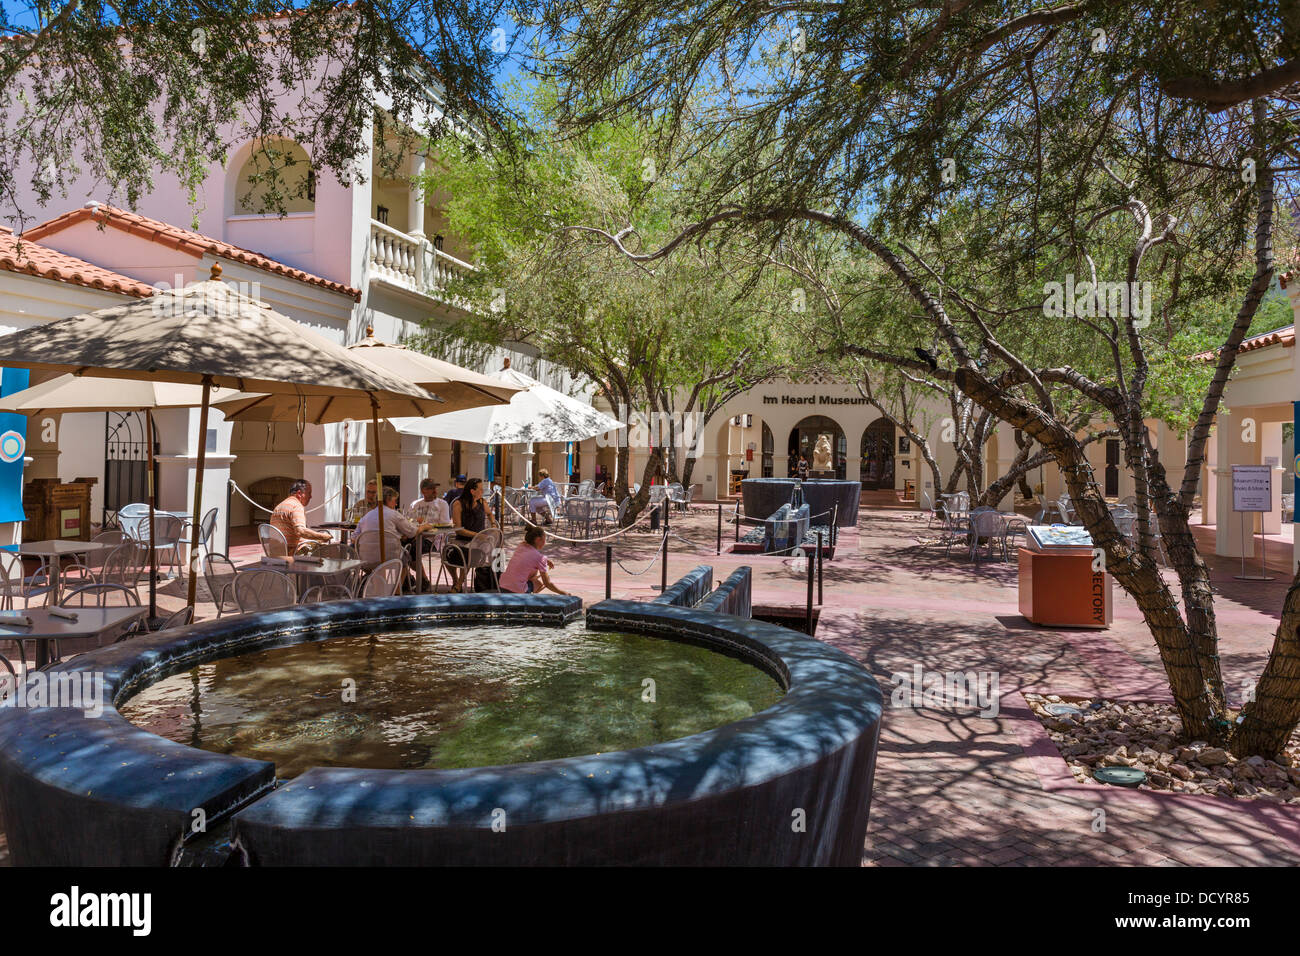 Cafe in the courtyard at The Heard Museum of Native Cultures and Art, Phoenix, Arizona, USA - Stock Image